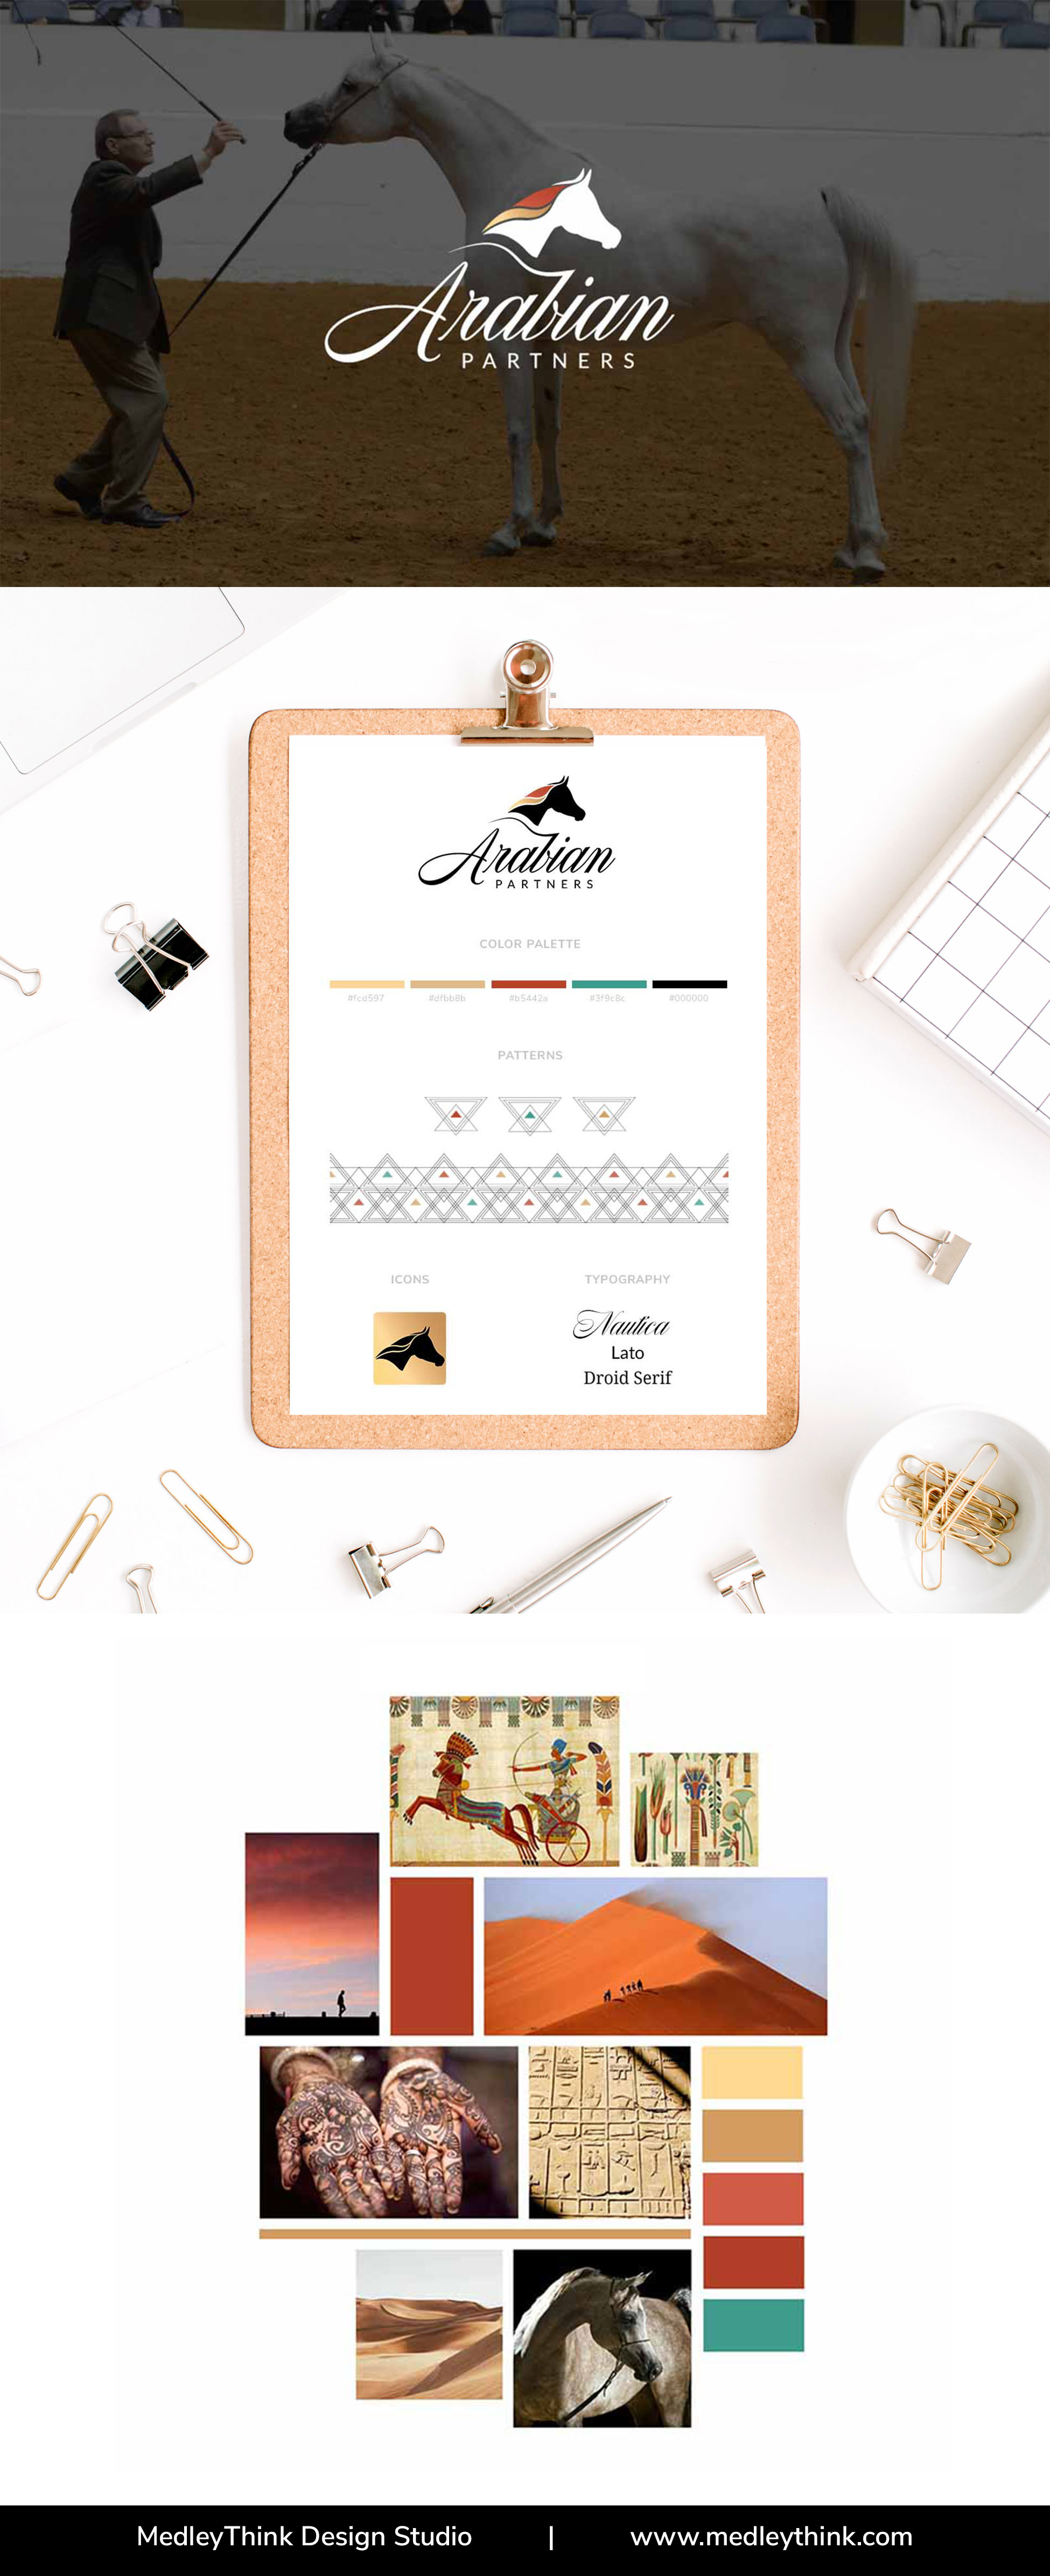 Branding Board Created for Arabian Horses Breeder and Trainer Company. #logodesign #moodboard  #colorpalette #branding